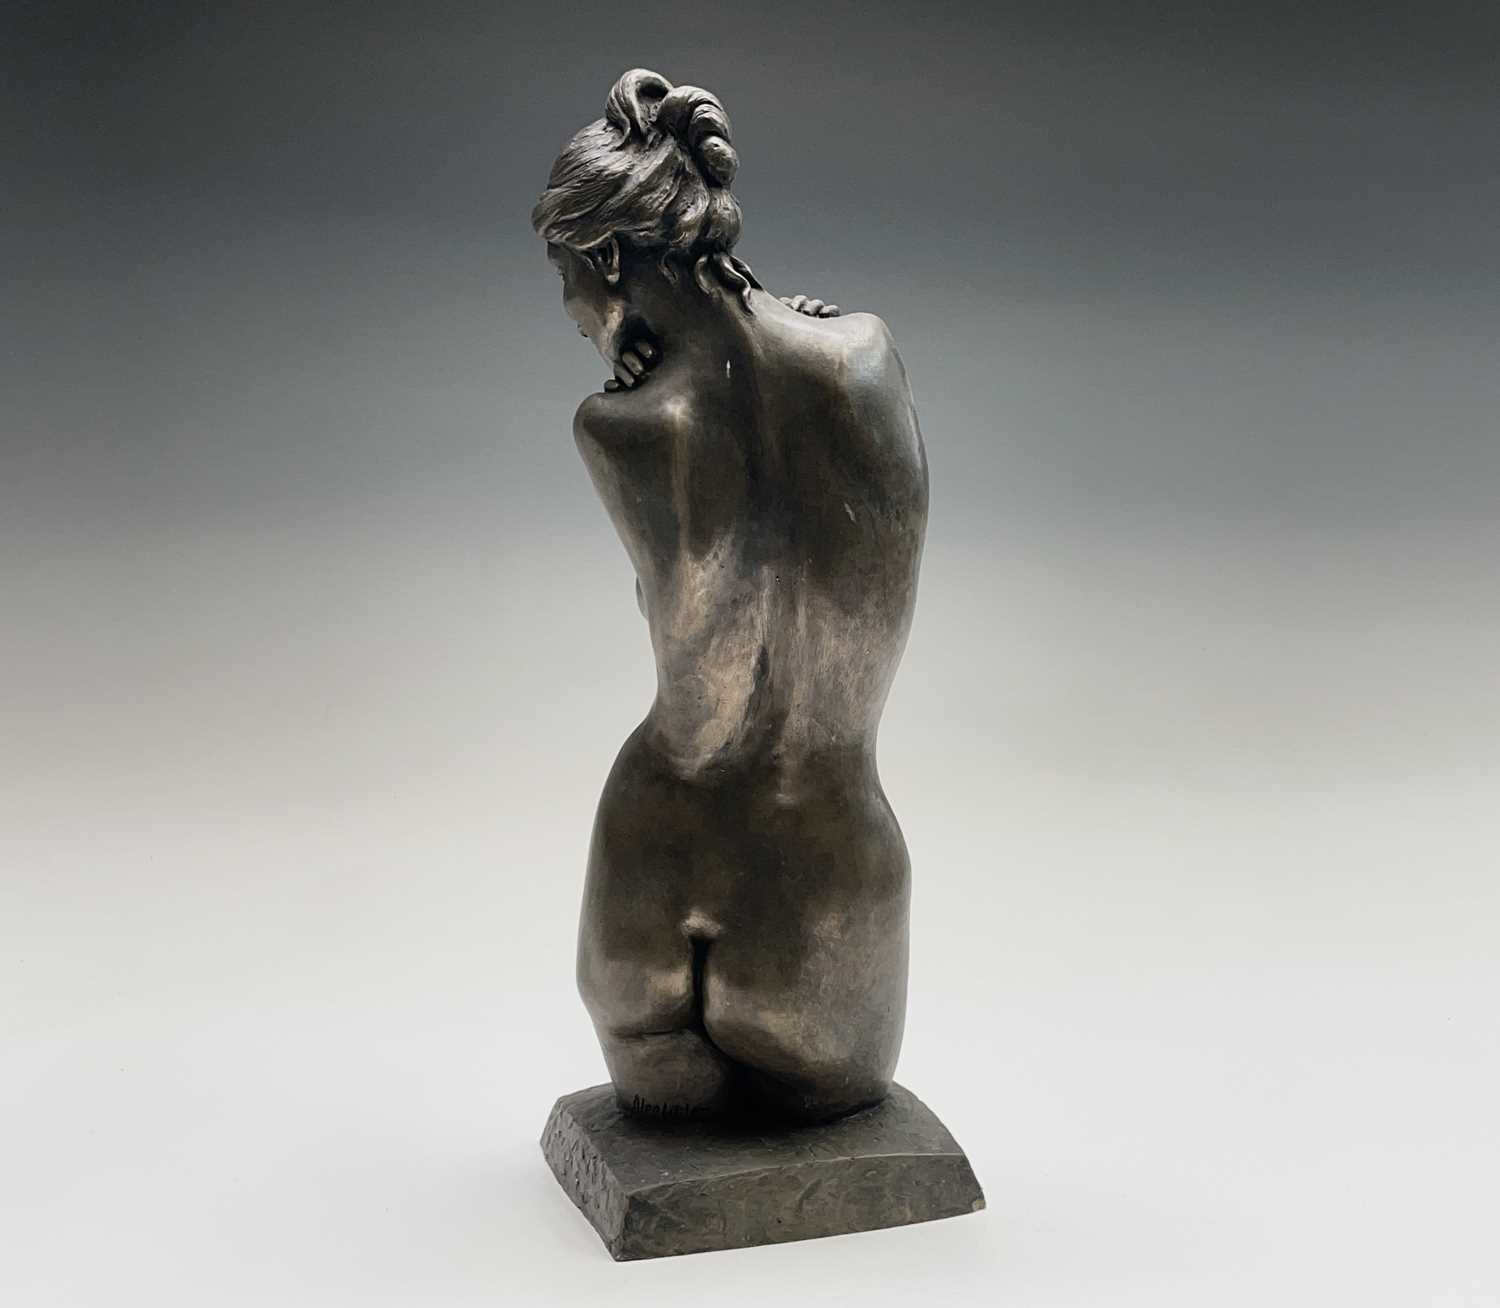 Alec WILES (1924)Female Form Bronzed resin sculpture Signed Height 36.5cm - Image 7 of 11